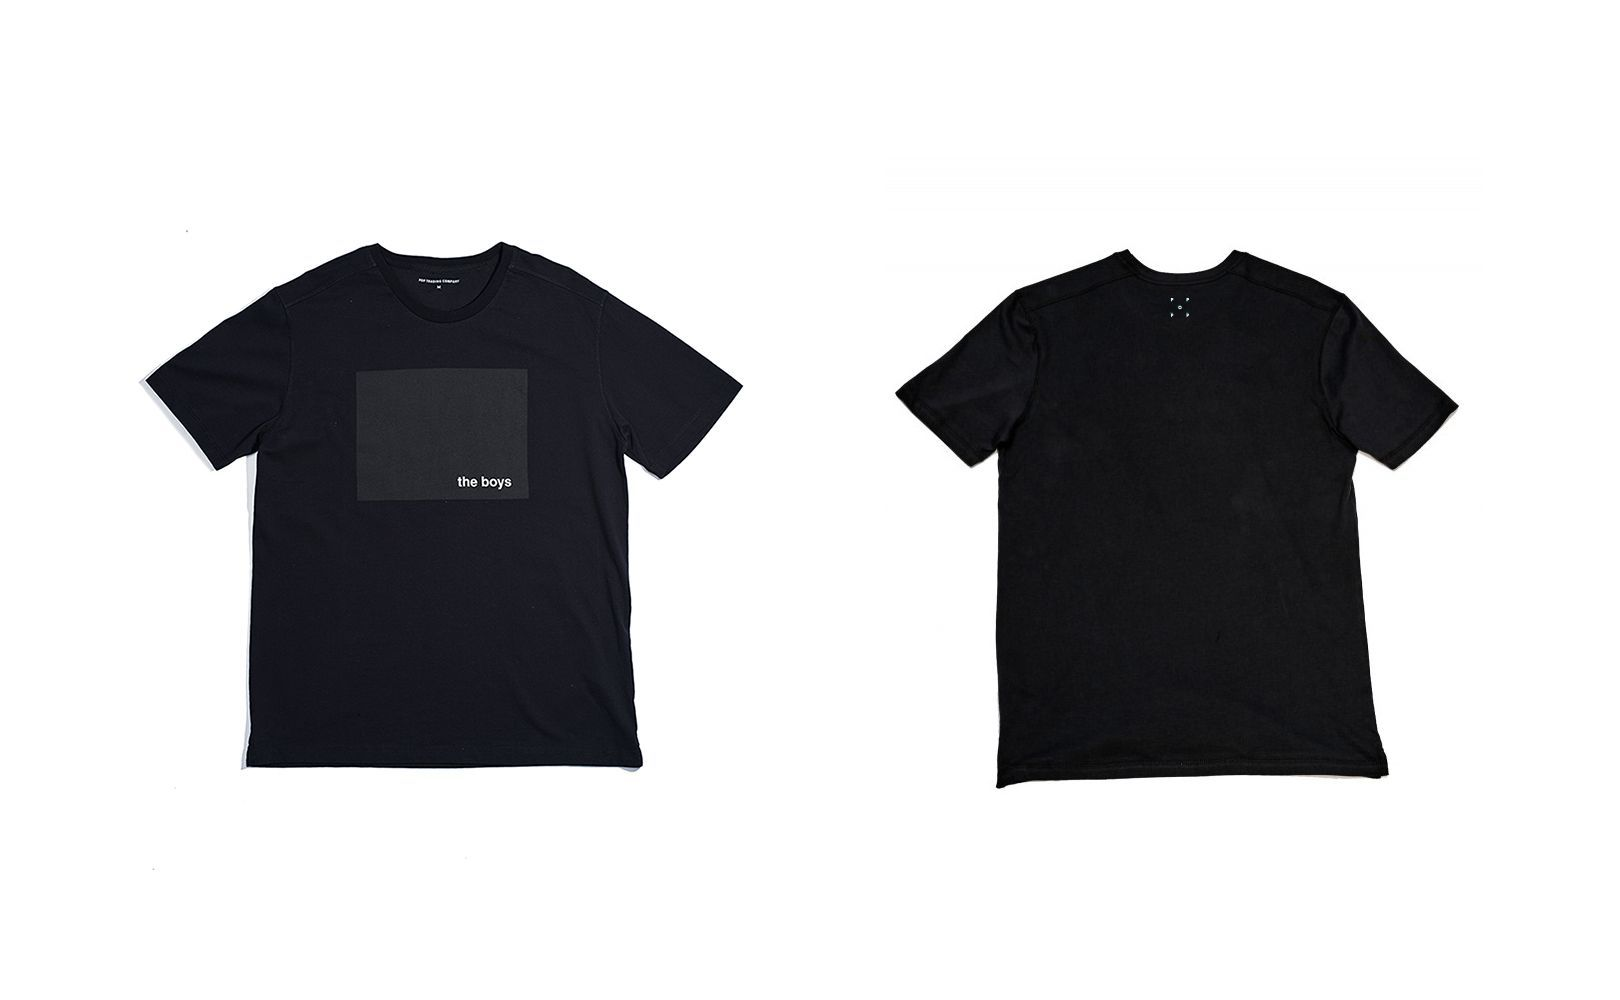 pop-trading-company-aw17-product-the-boys-t-shirt-black